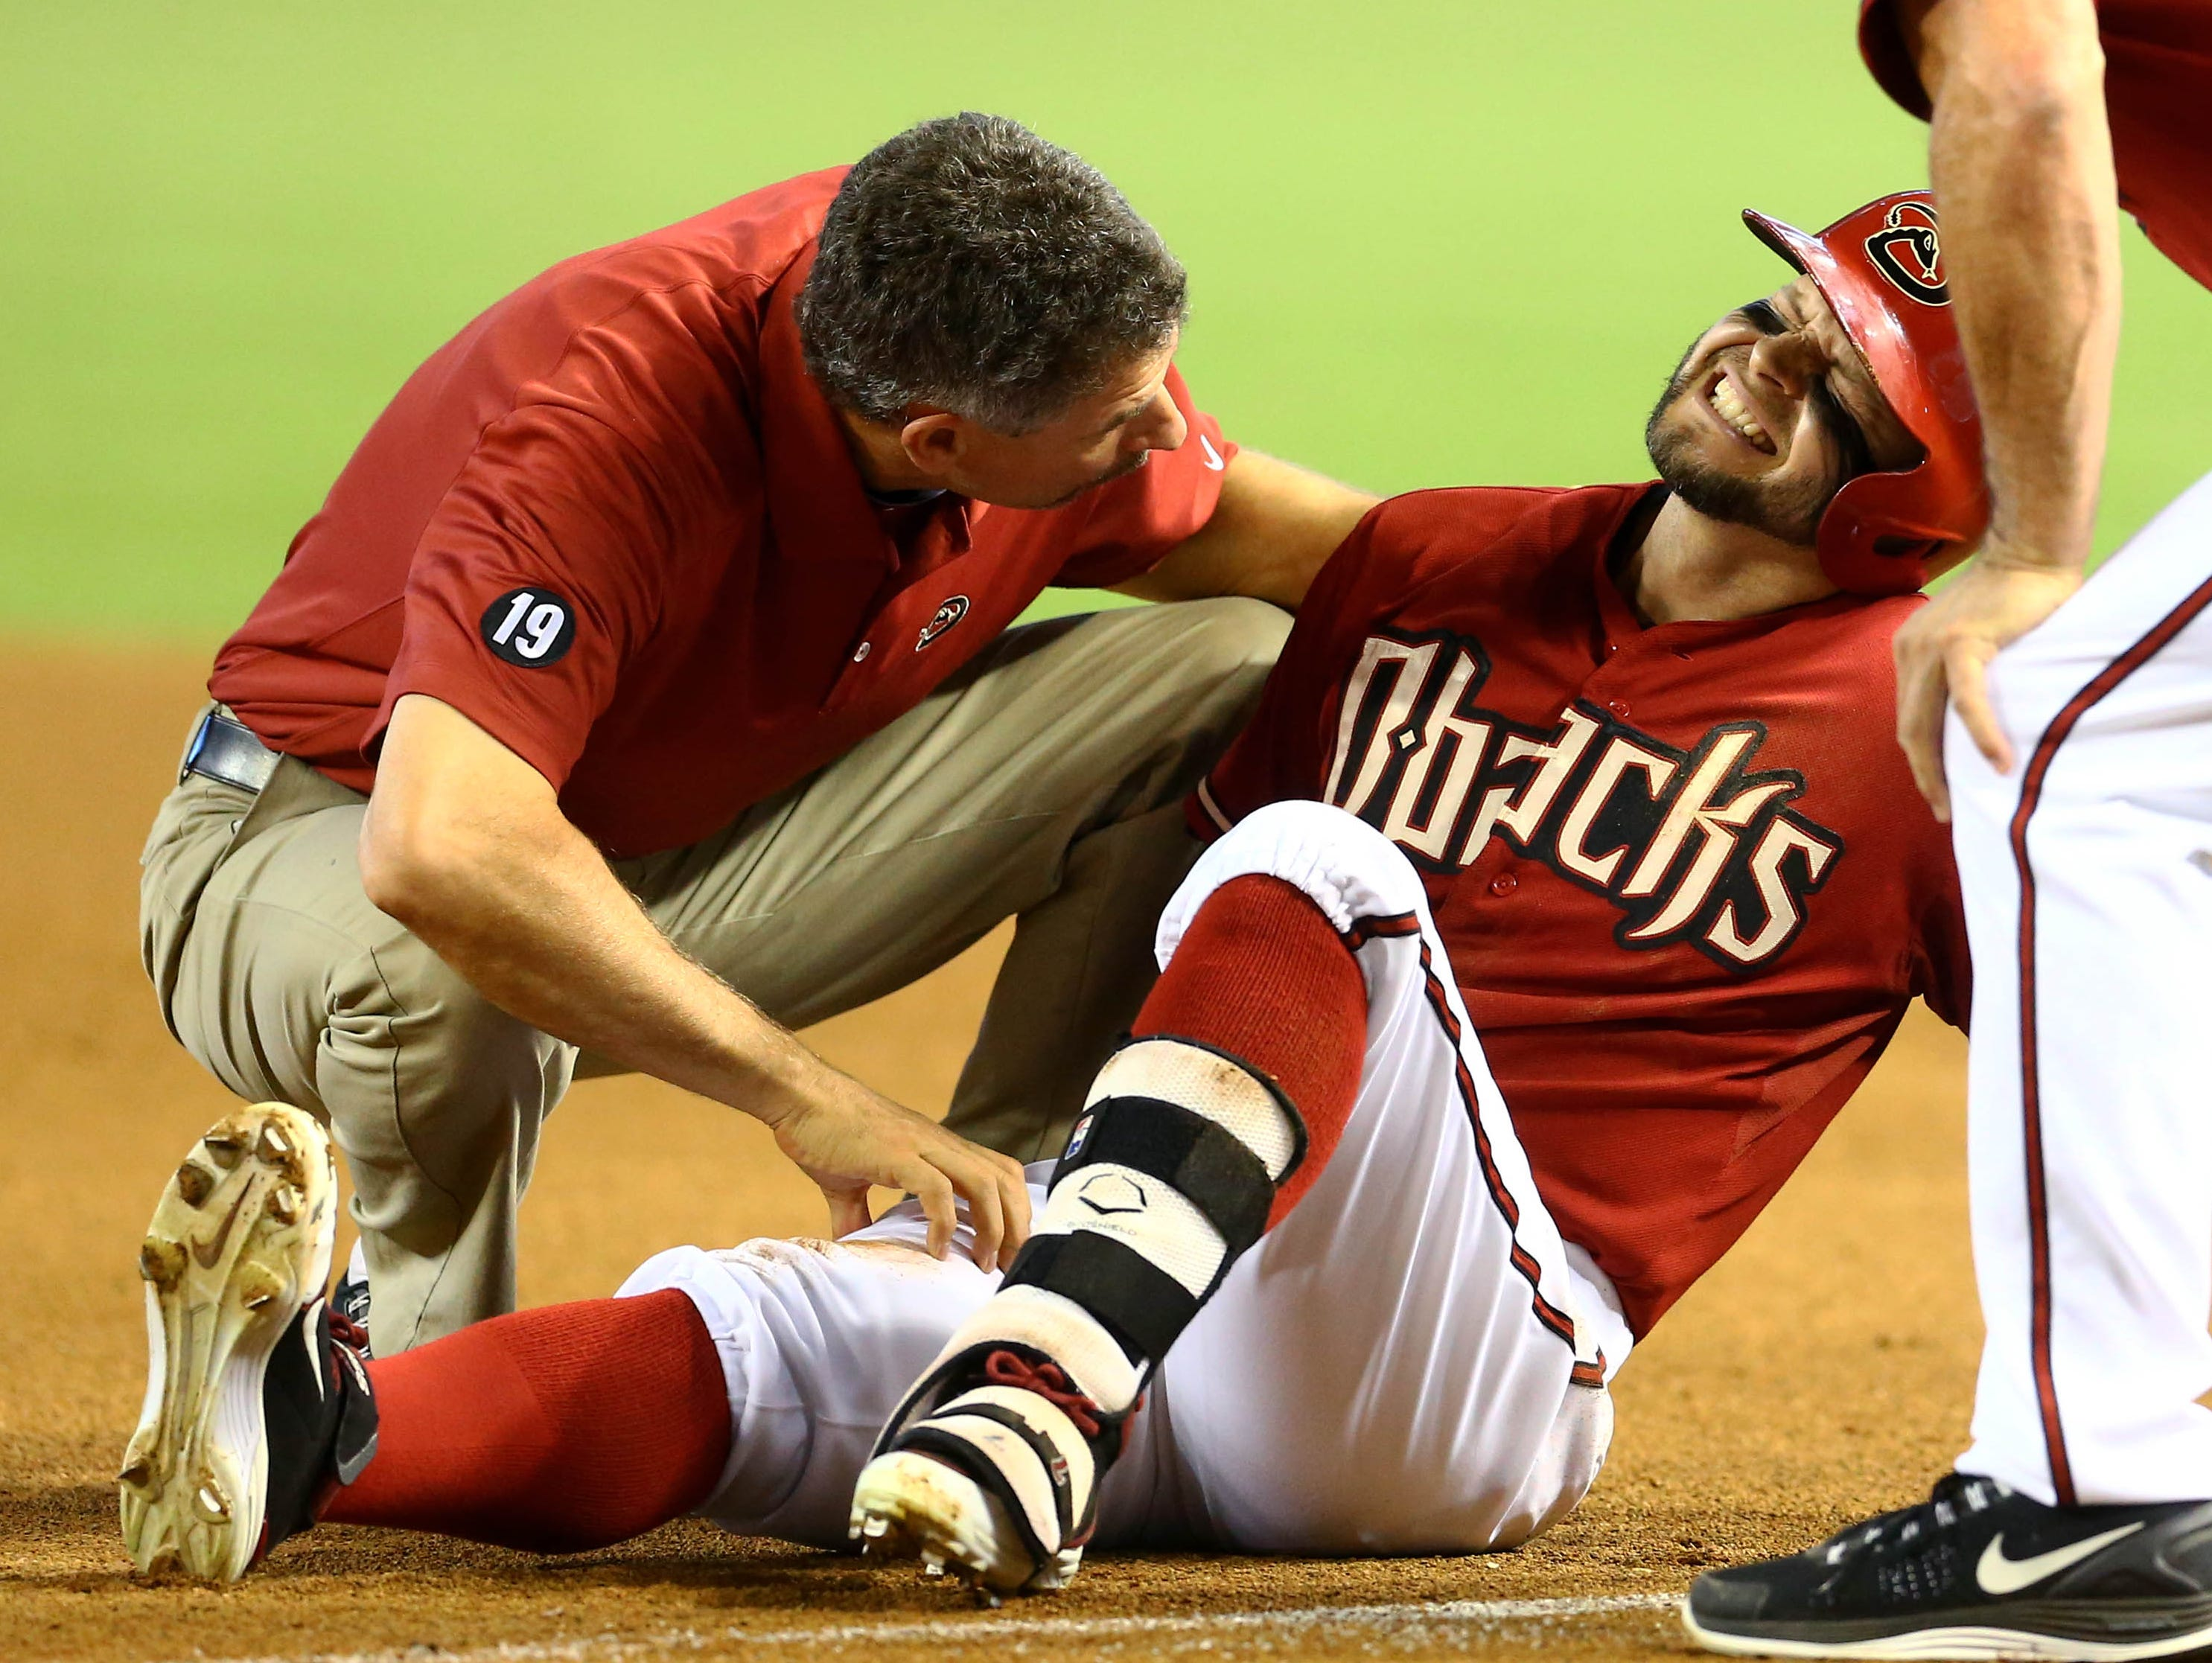 081113-cody-ross-injury